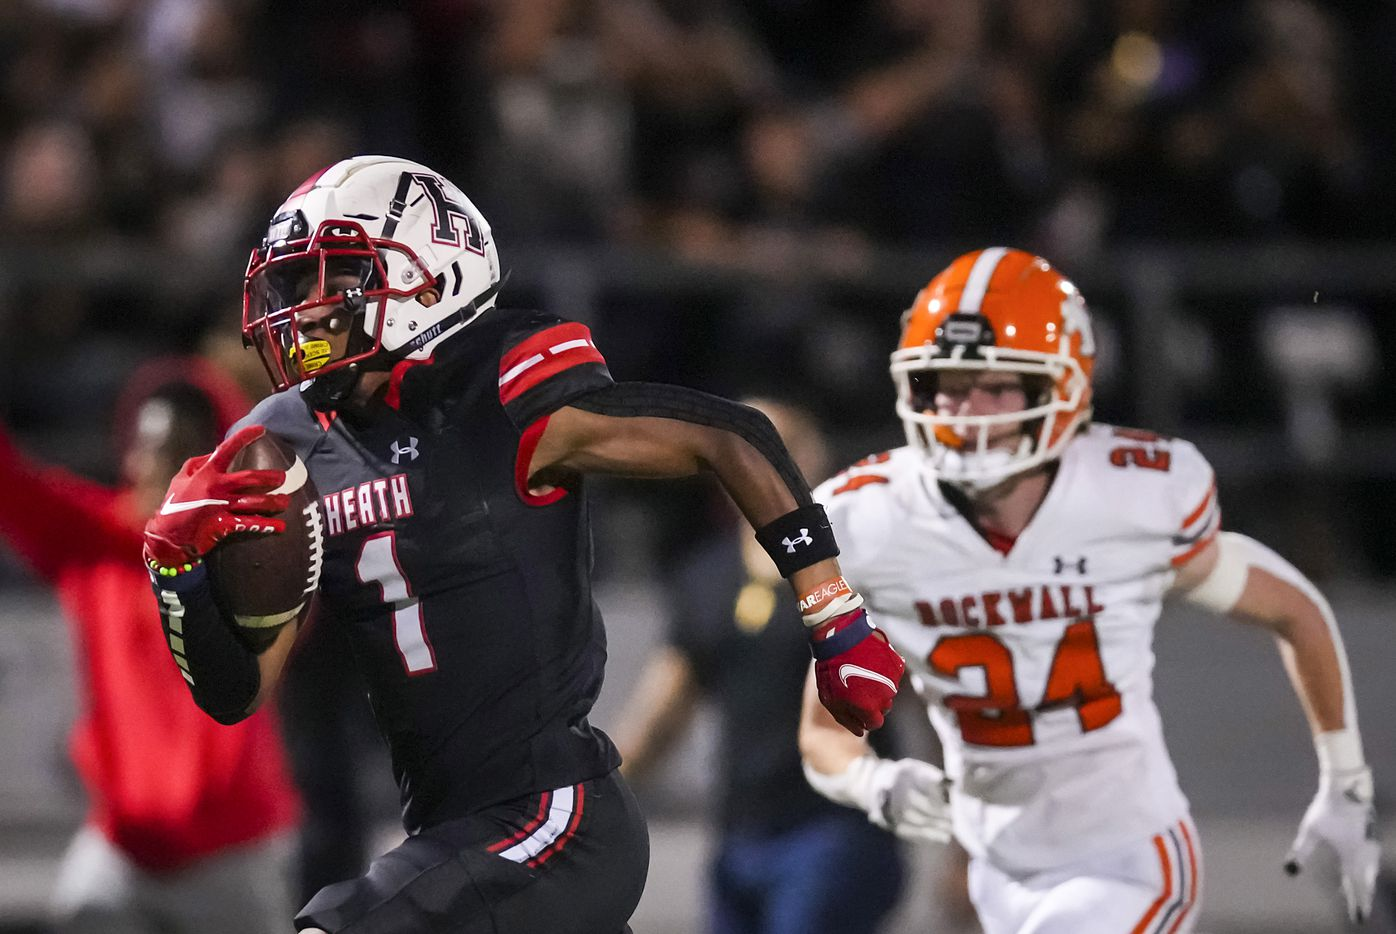 Rockwall-Heath wide receiver Jay Fair (1) races to the end zone on a 69-yard touchdown reception as Rockwall defensive back Will Rakow (24) defends during the first half of a District 10-6A high school football game at Wilkerson-Sanders Stadium on Friday, Sept. 24, 2021, in Rockwall.